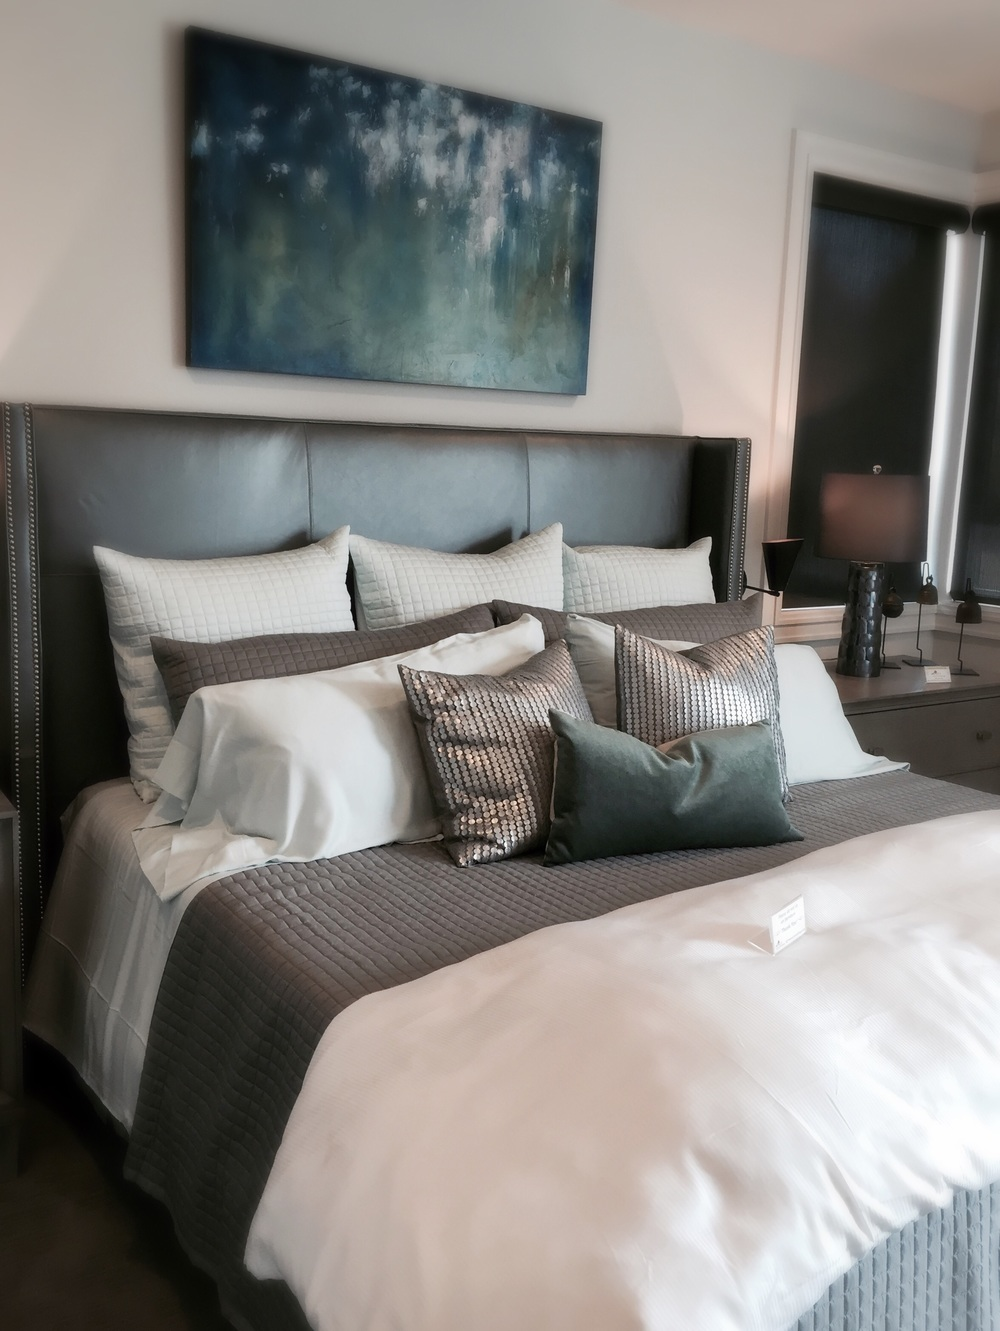 Lots of upholstered headboards seen throughout the homes...metallicswere popularfor accessories like these pillows.